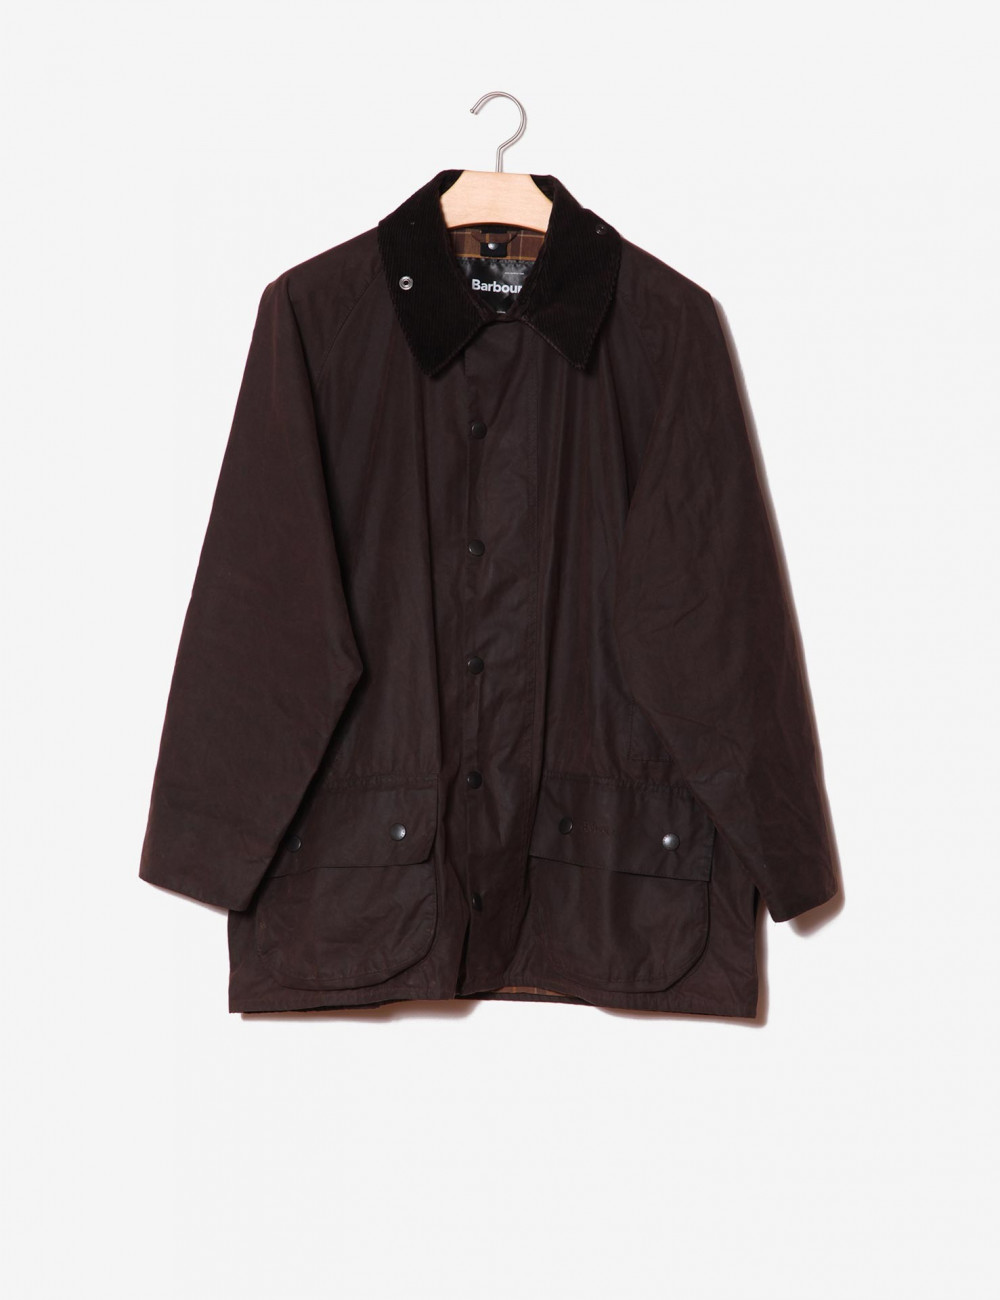 Barbour marrone in cotone cerato-Barbour-frontale.jpg